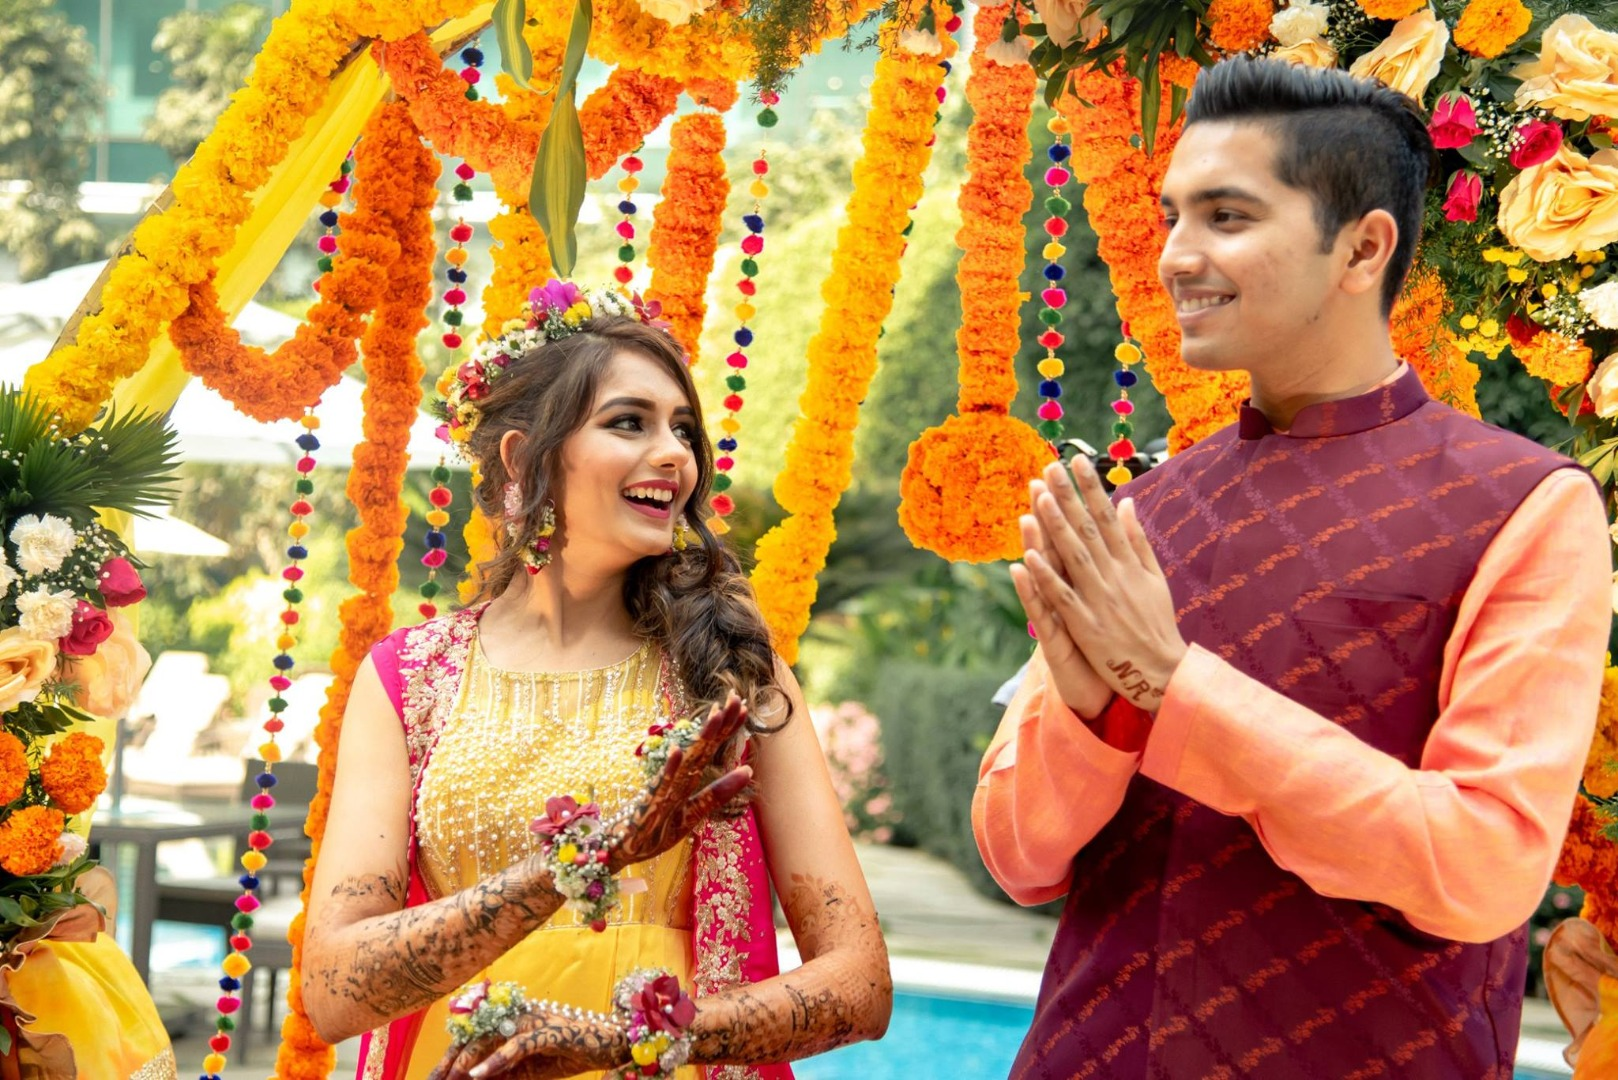 Colouful Floral Mehendi Ceremony Decor and a Beautiful Couple